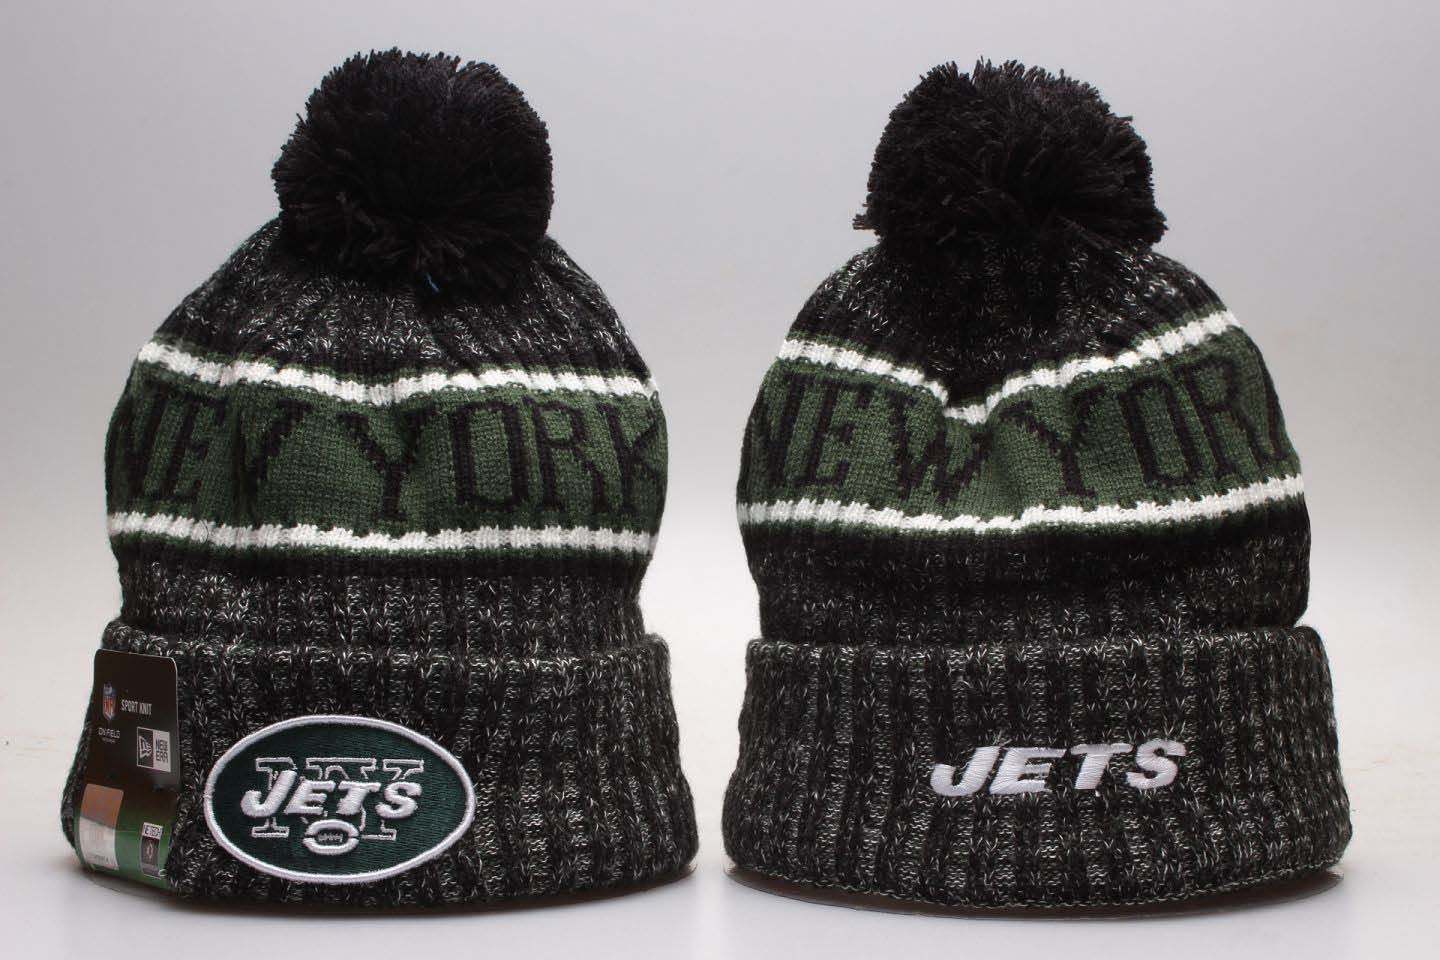 NFL New York Jets Beanie hot hat